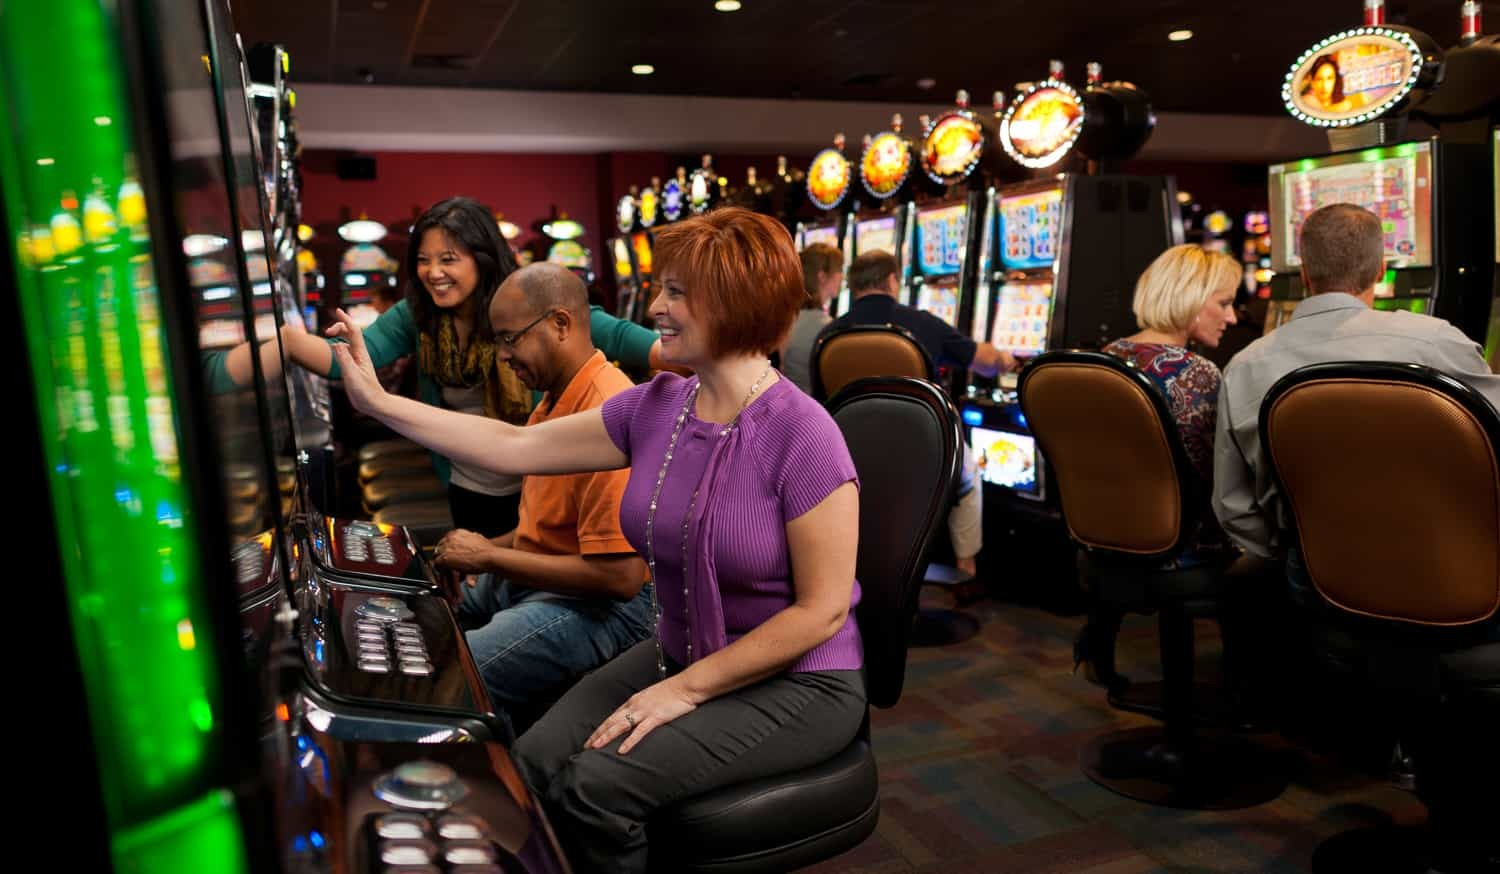 Star games online casino review